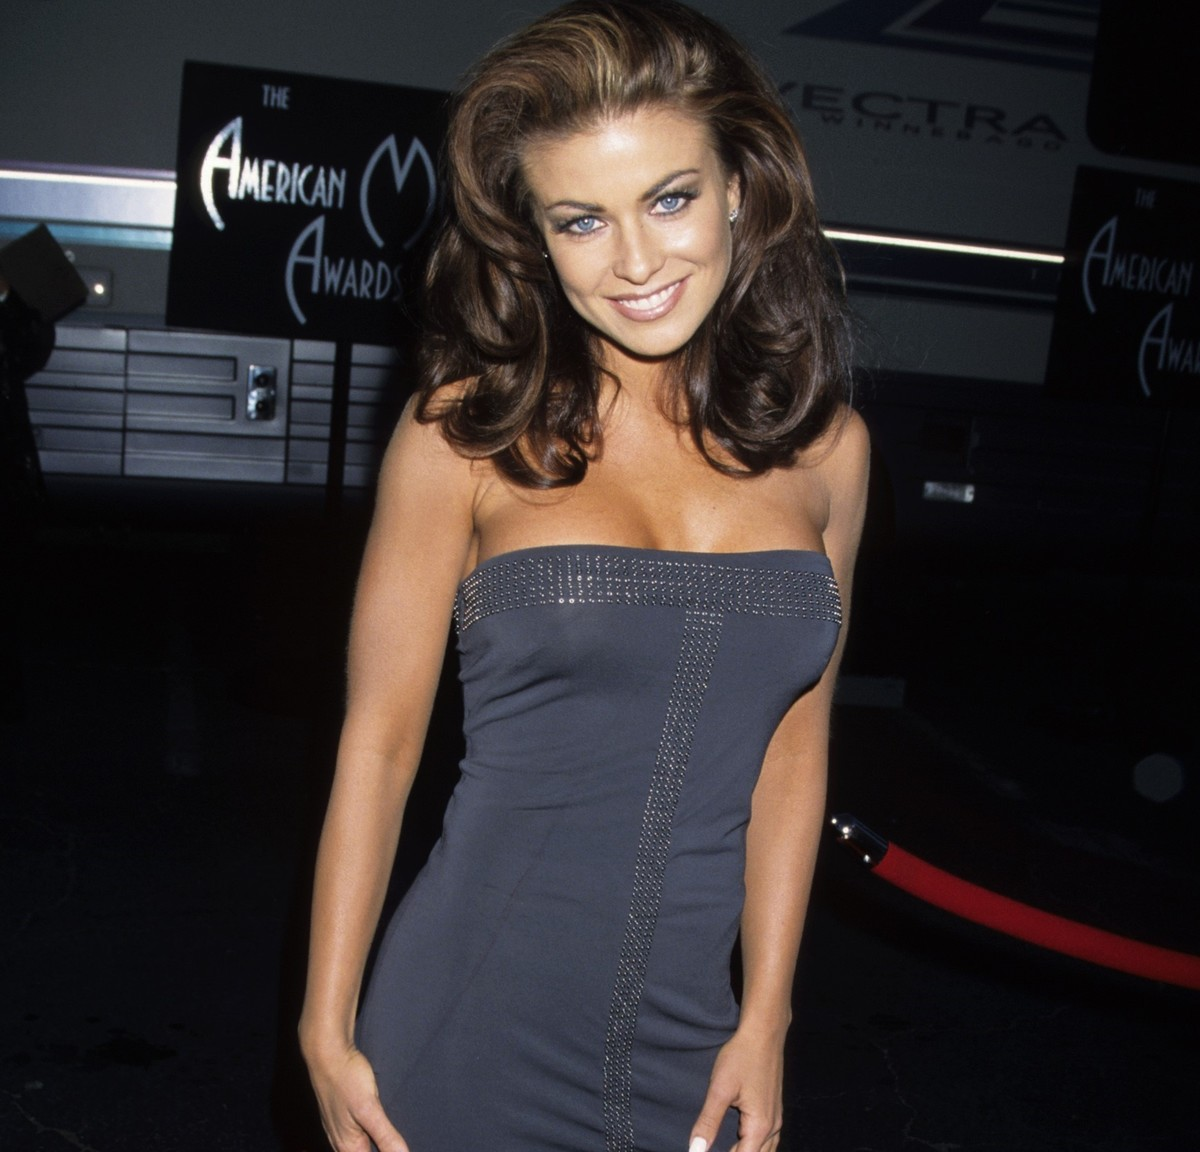 Carmen Electra smiles while wearing a form-fitting gray dress.